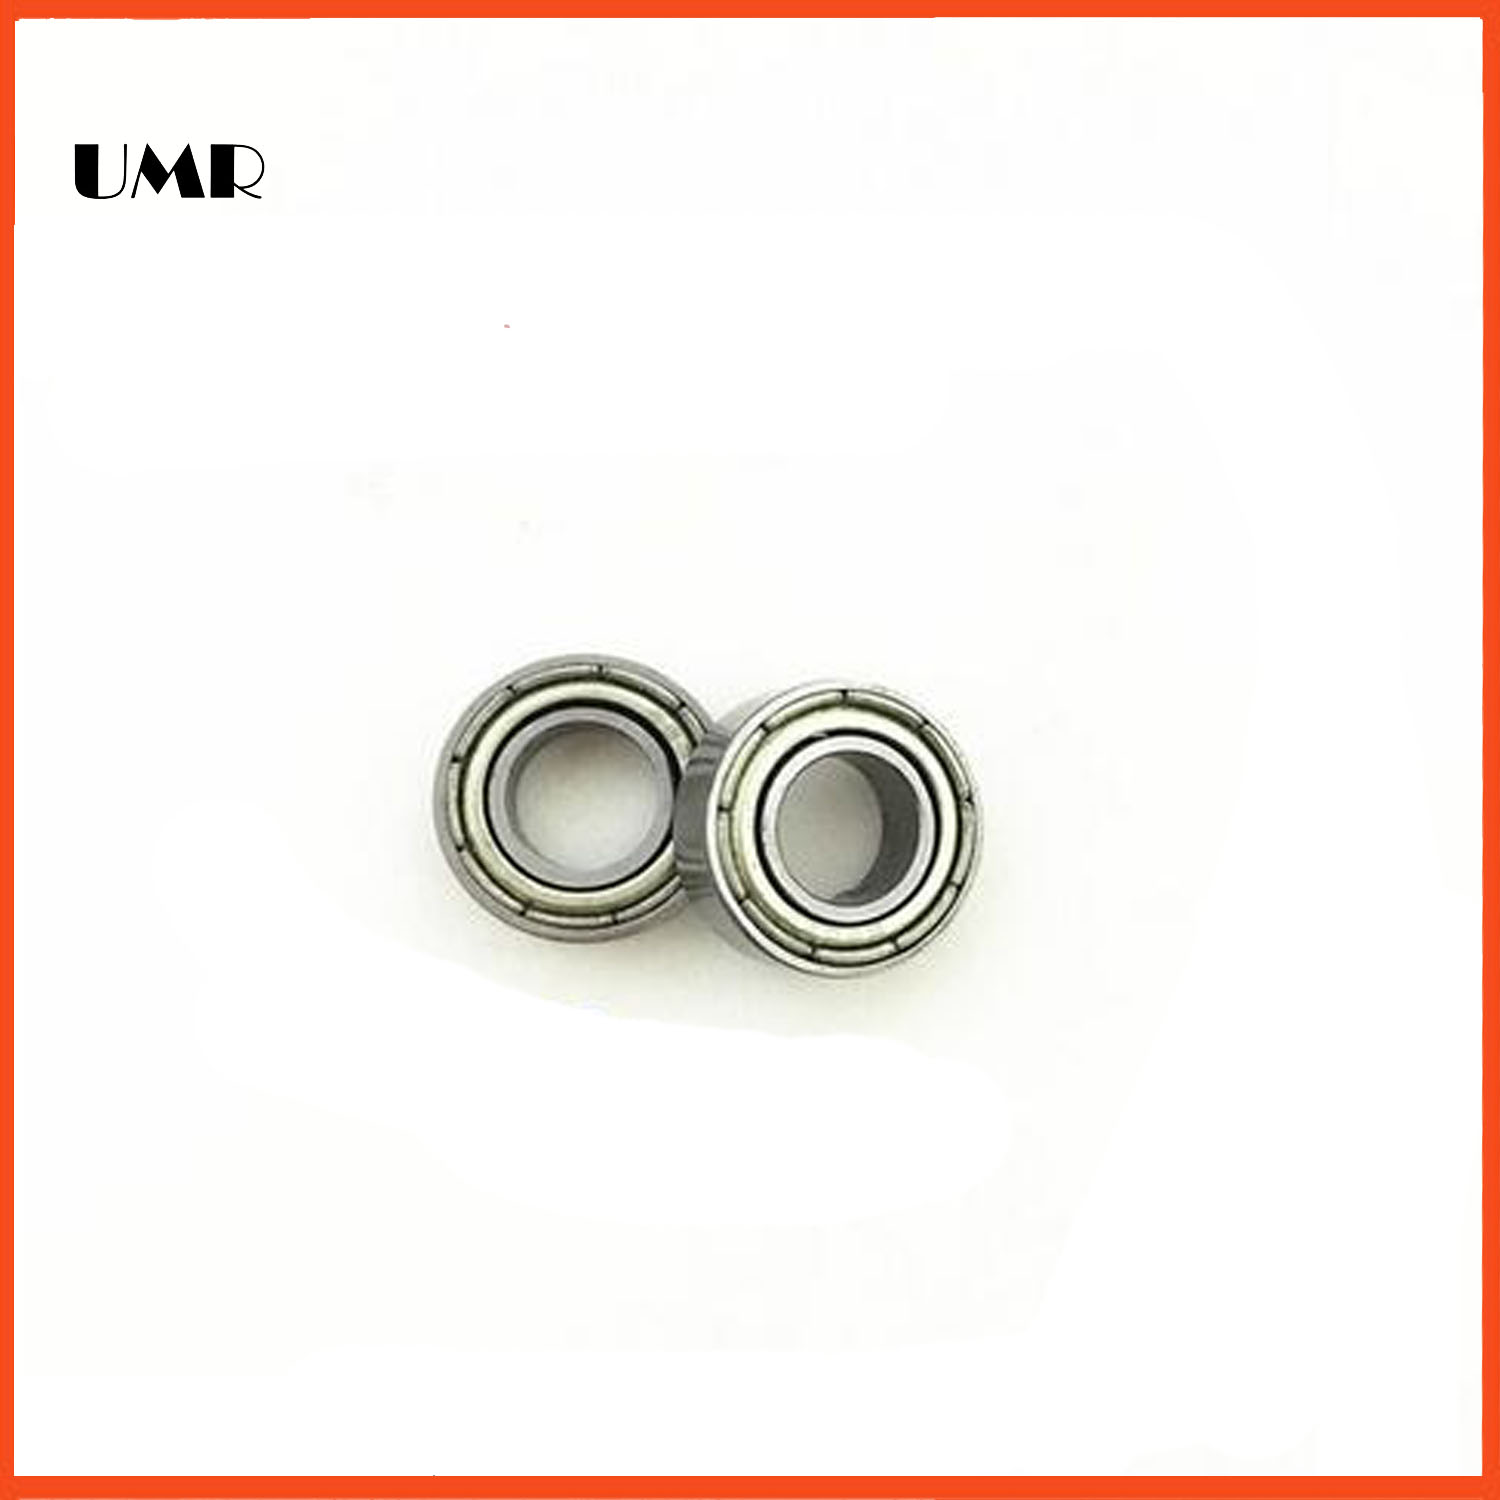 Deep Groove Ball Bearing  6401  6403 6404 6405 6406 6407 6408 6409 6410 ZZ UMR bearings 6401 bearing size 12 x 42 x 13 mm 2 pcs heavy duty deep groove ball bearings 6401rs 6401 2rs